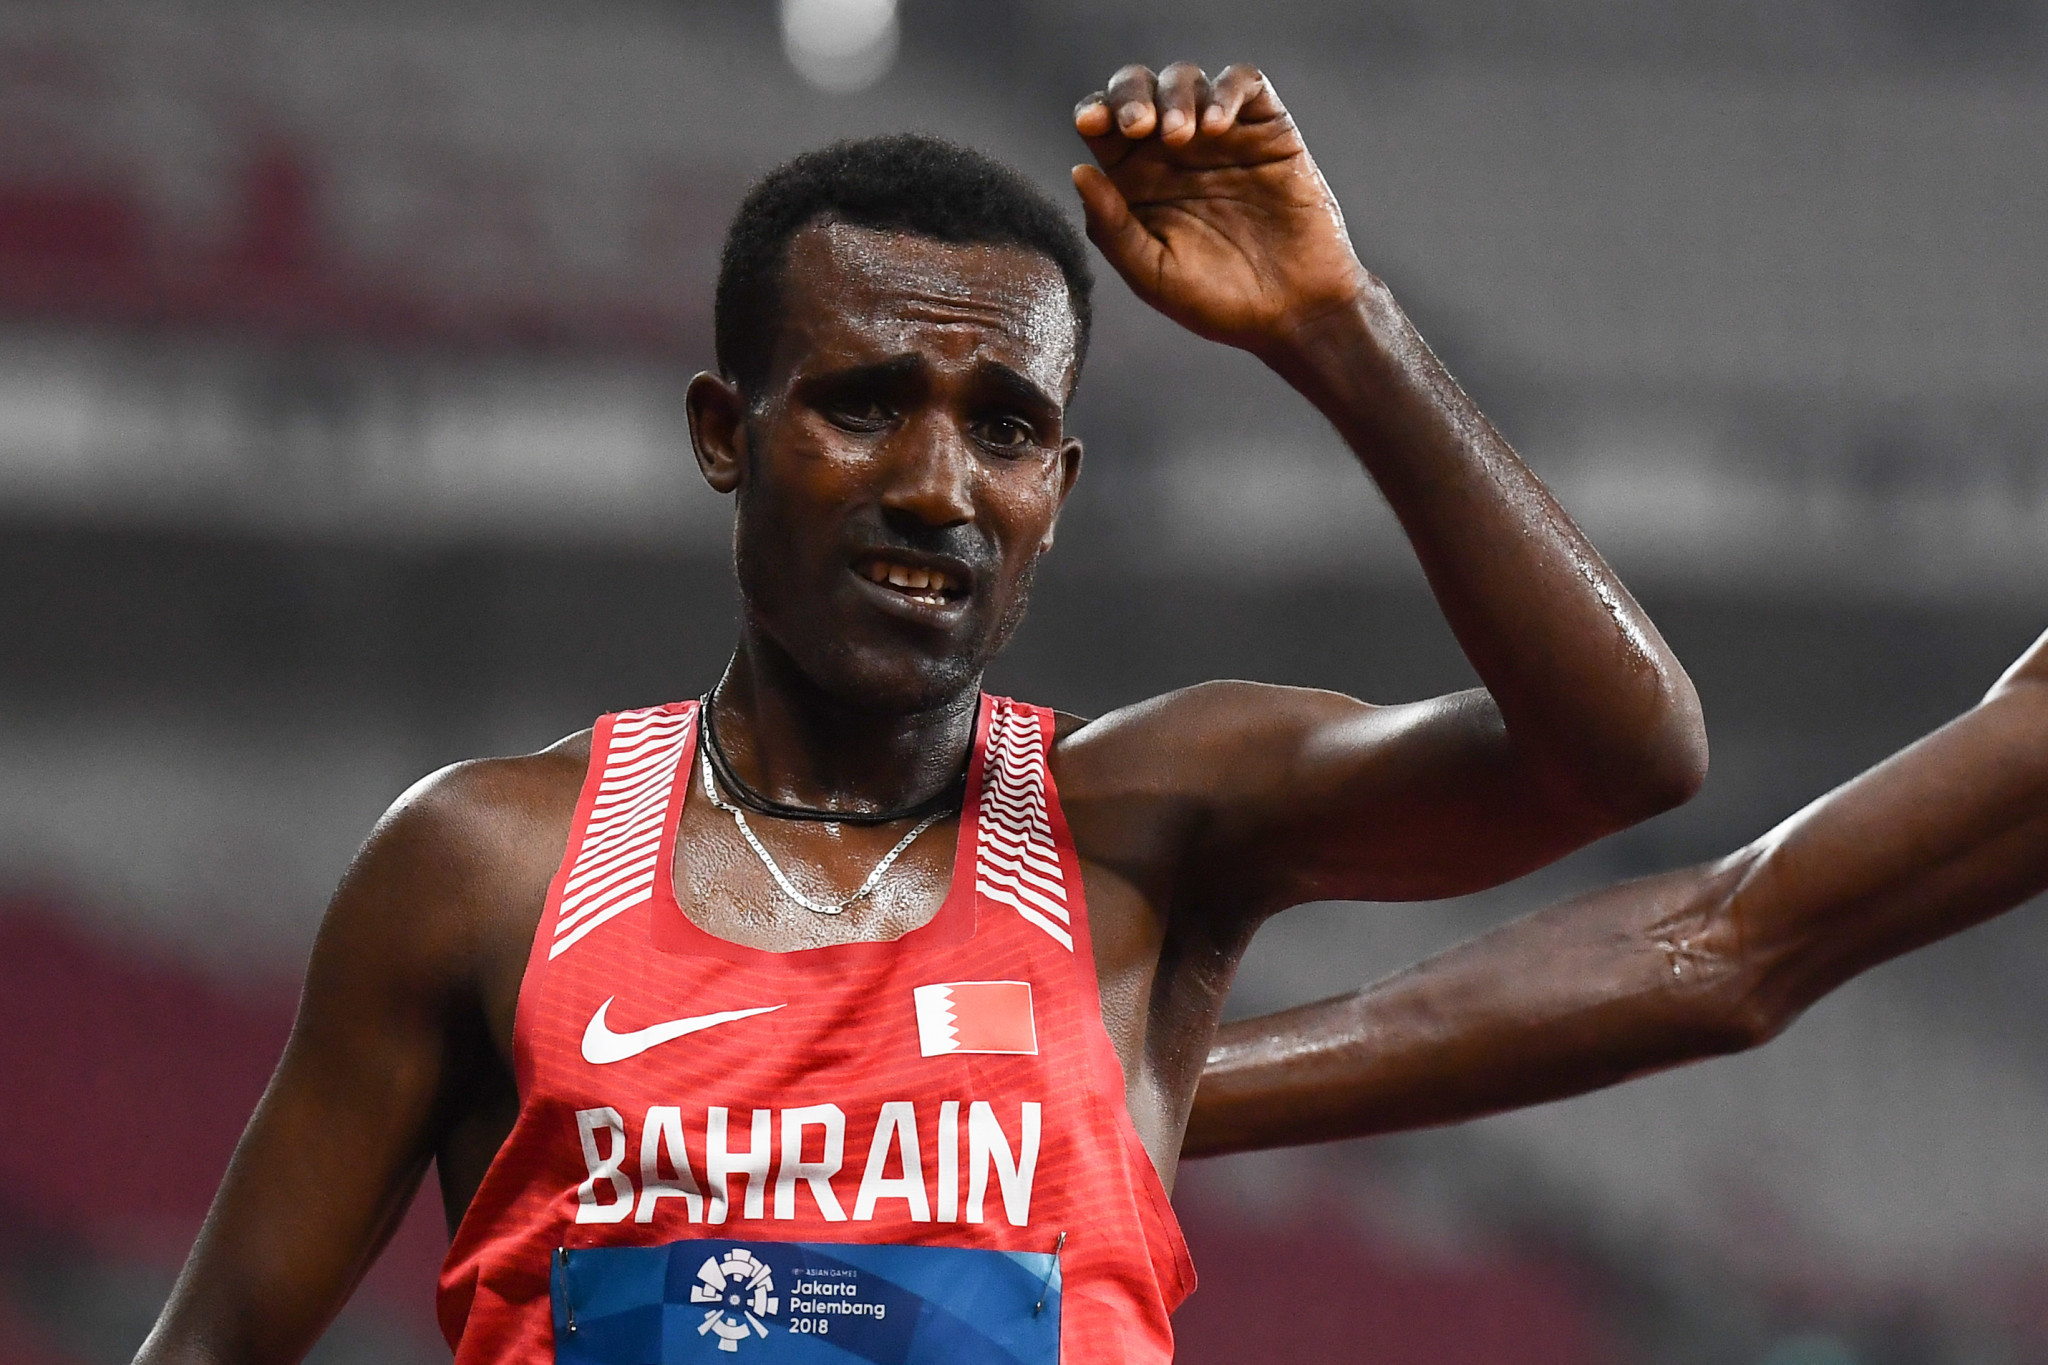 Ethiopian born Birhanu Balew won the men's race today at the IAAF Cross Country Permit meet in Antrim ©Getty Images